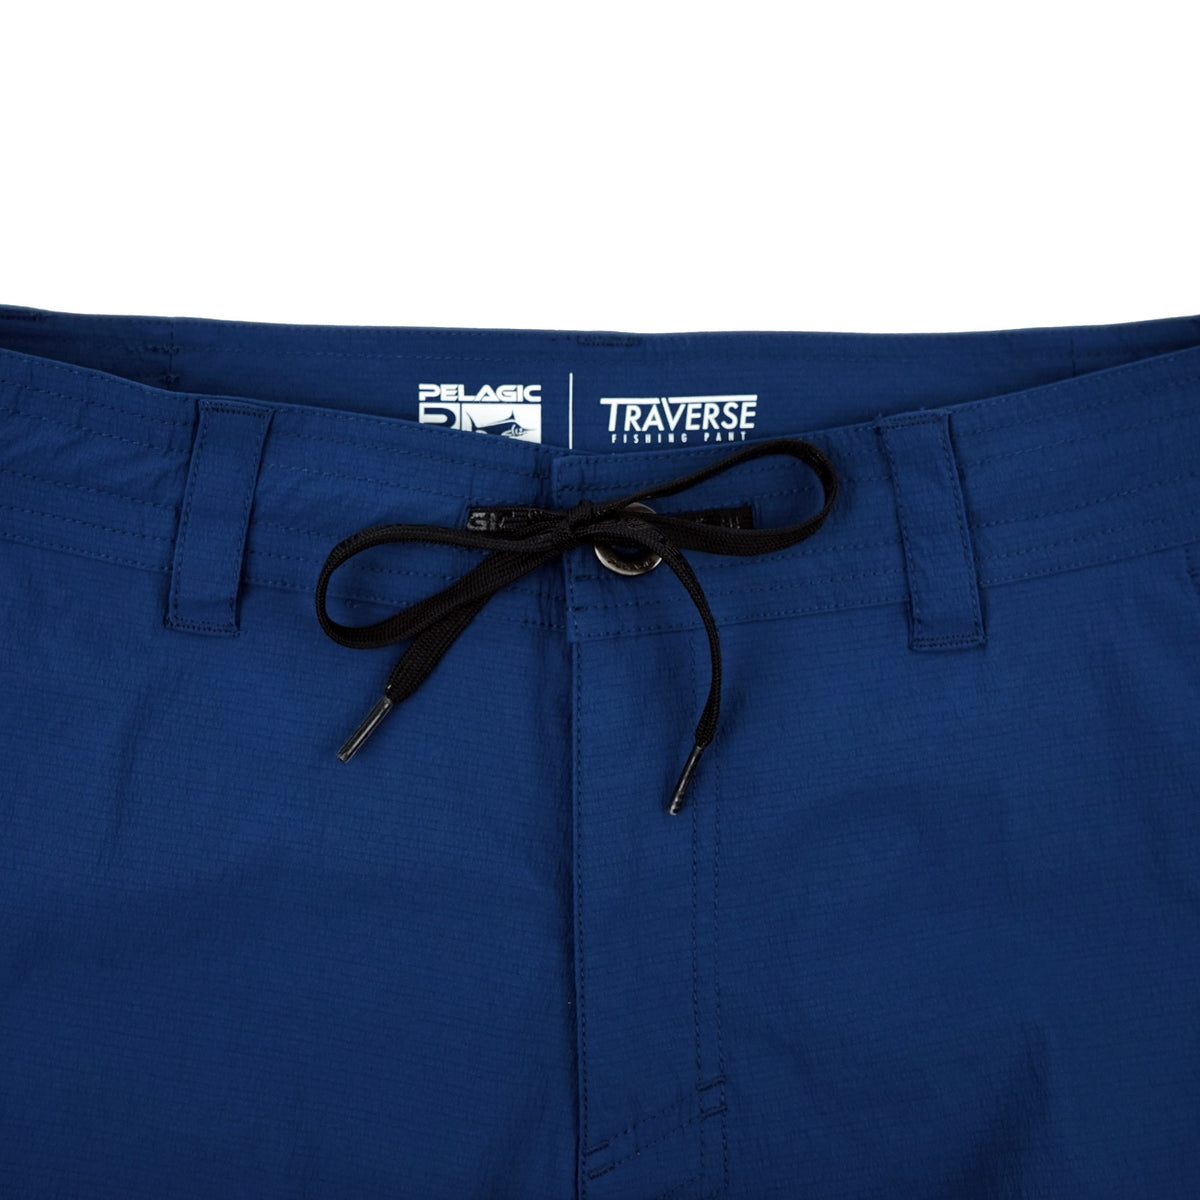 Traverse Lightweight Fishing Pants Big Image - 6